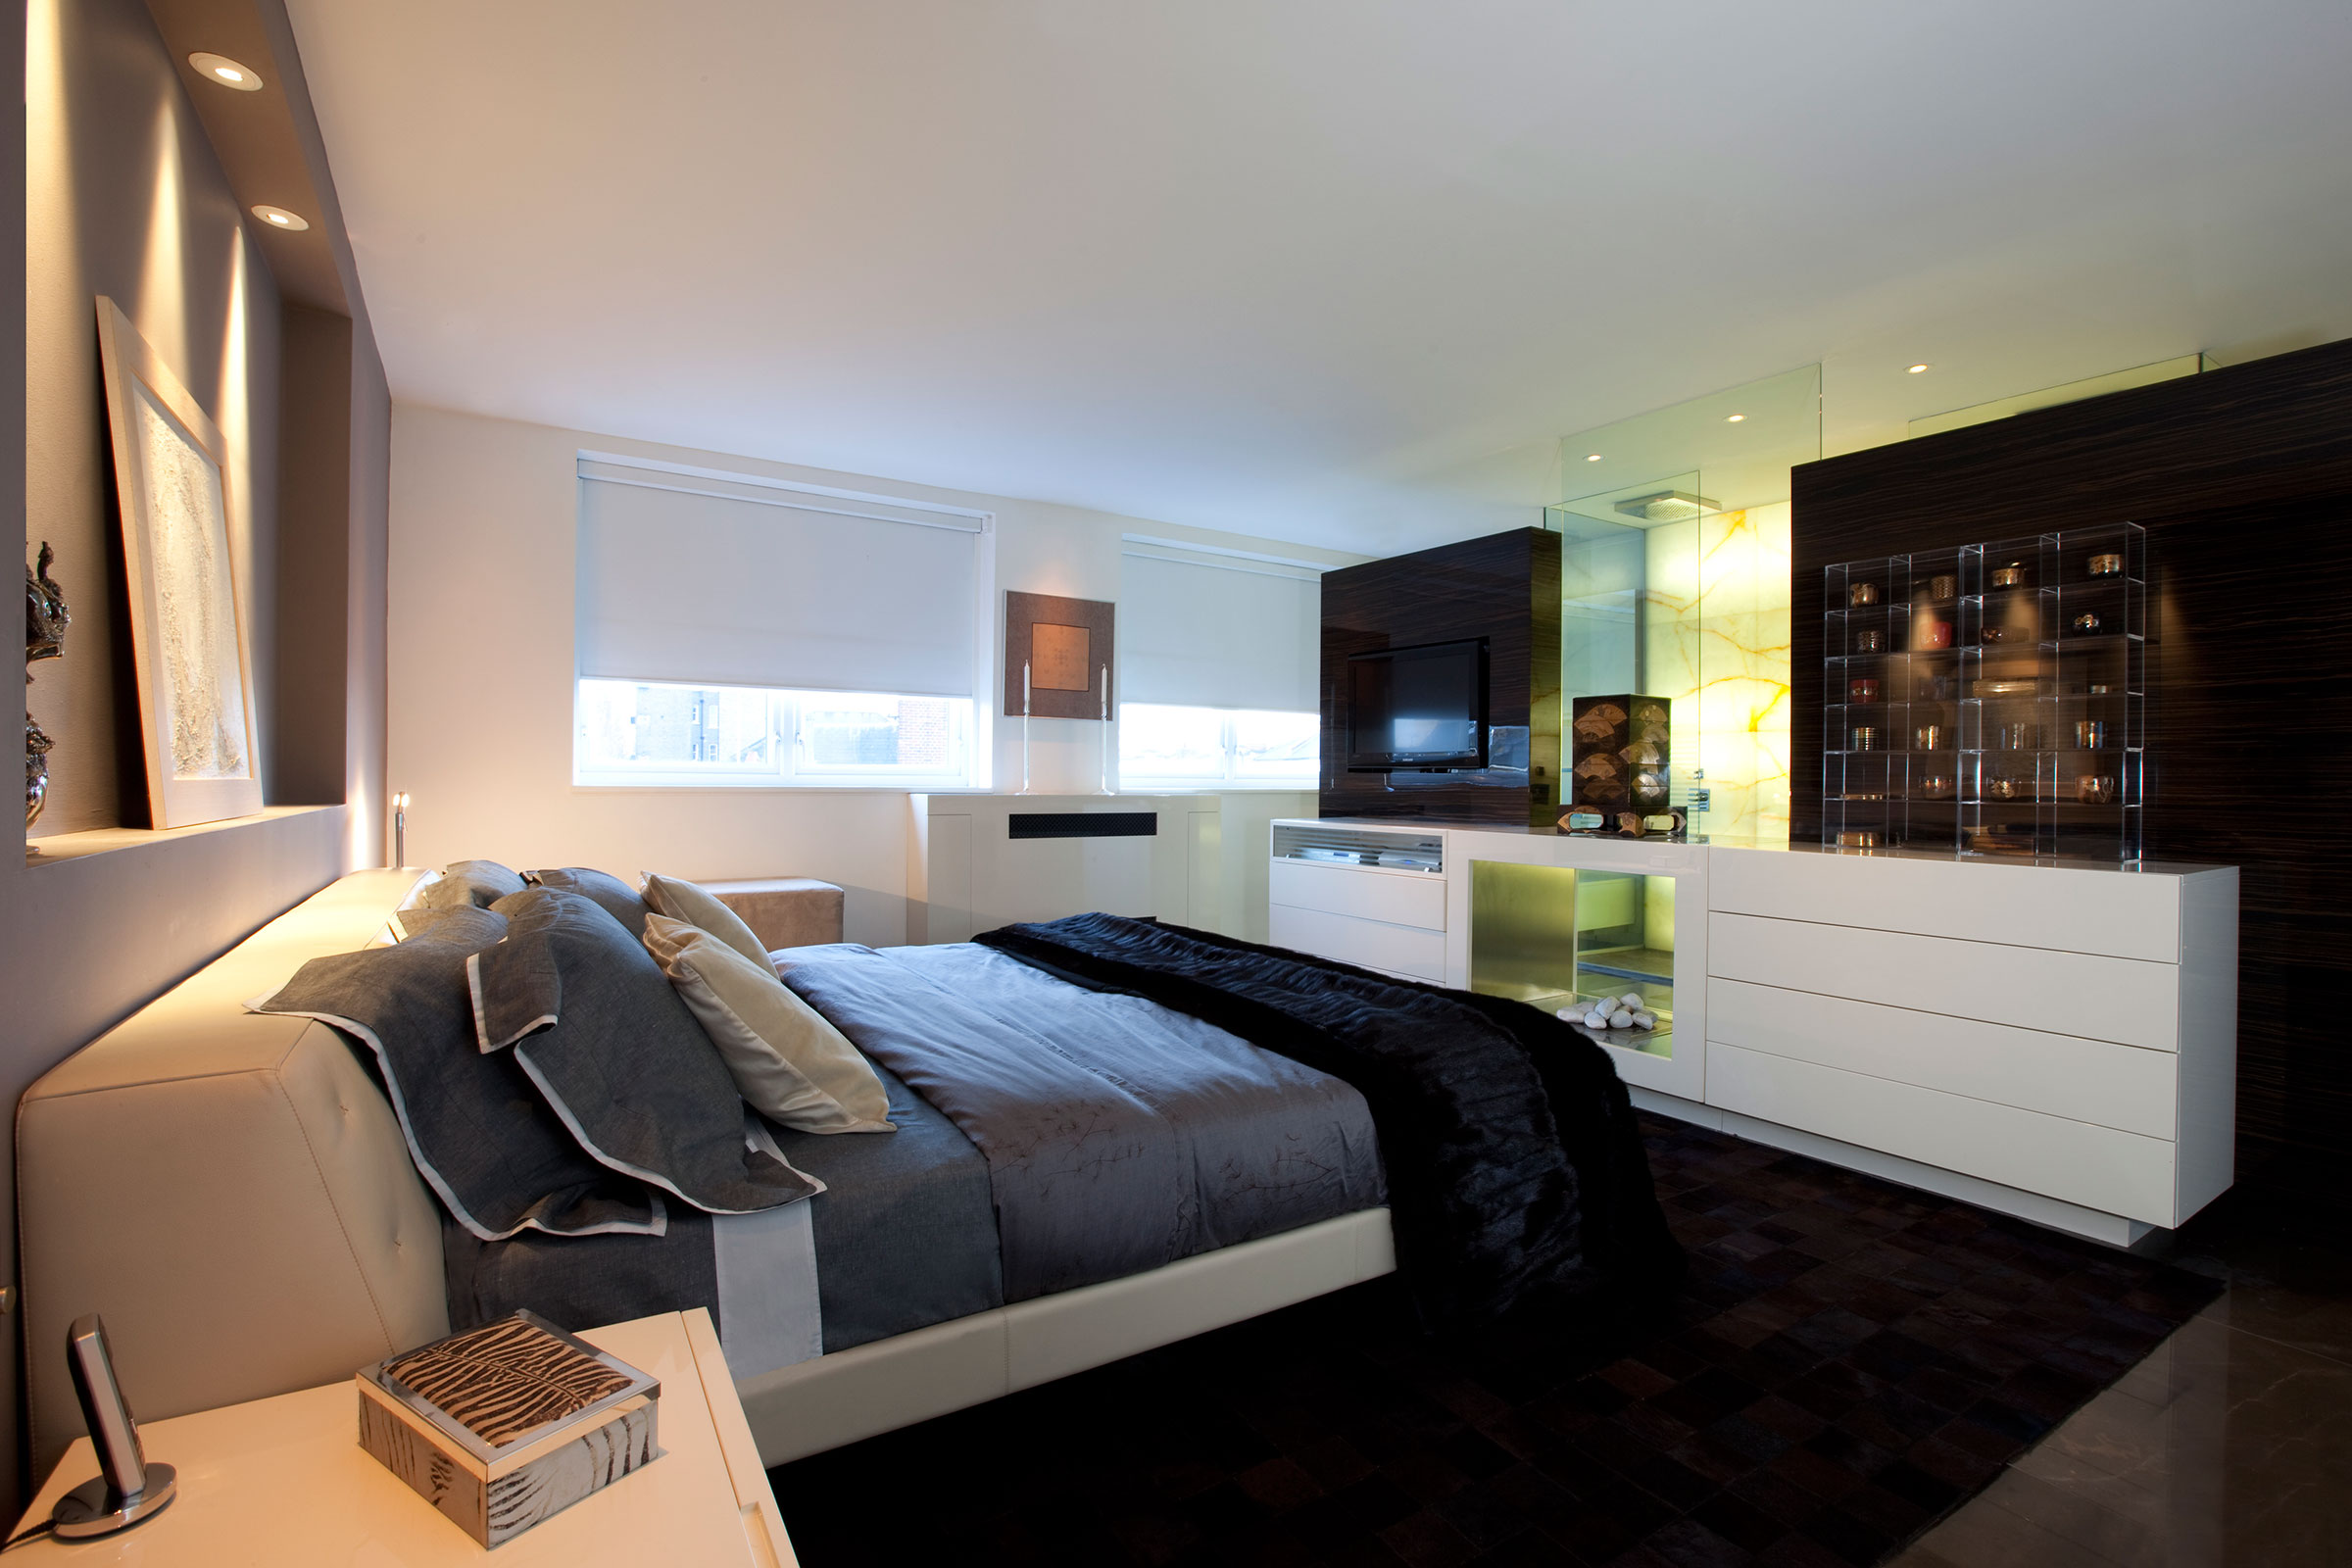 06_private_residence-london_2400x1600